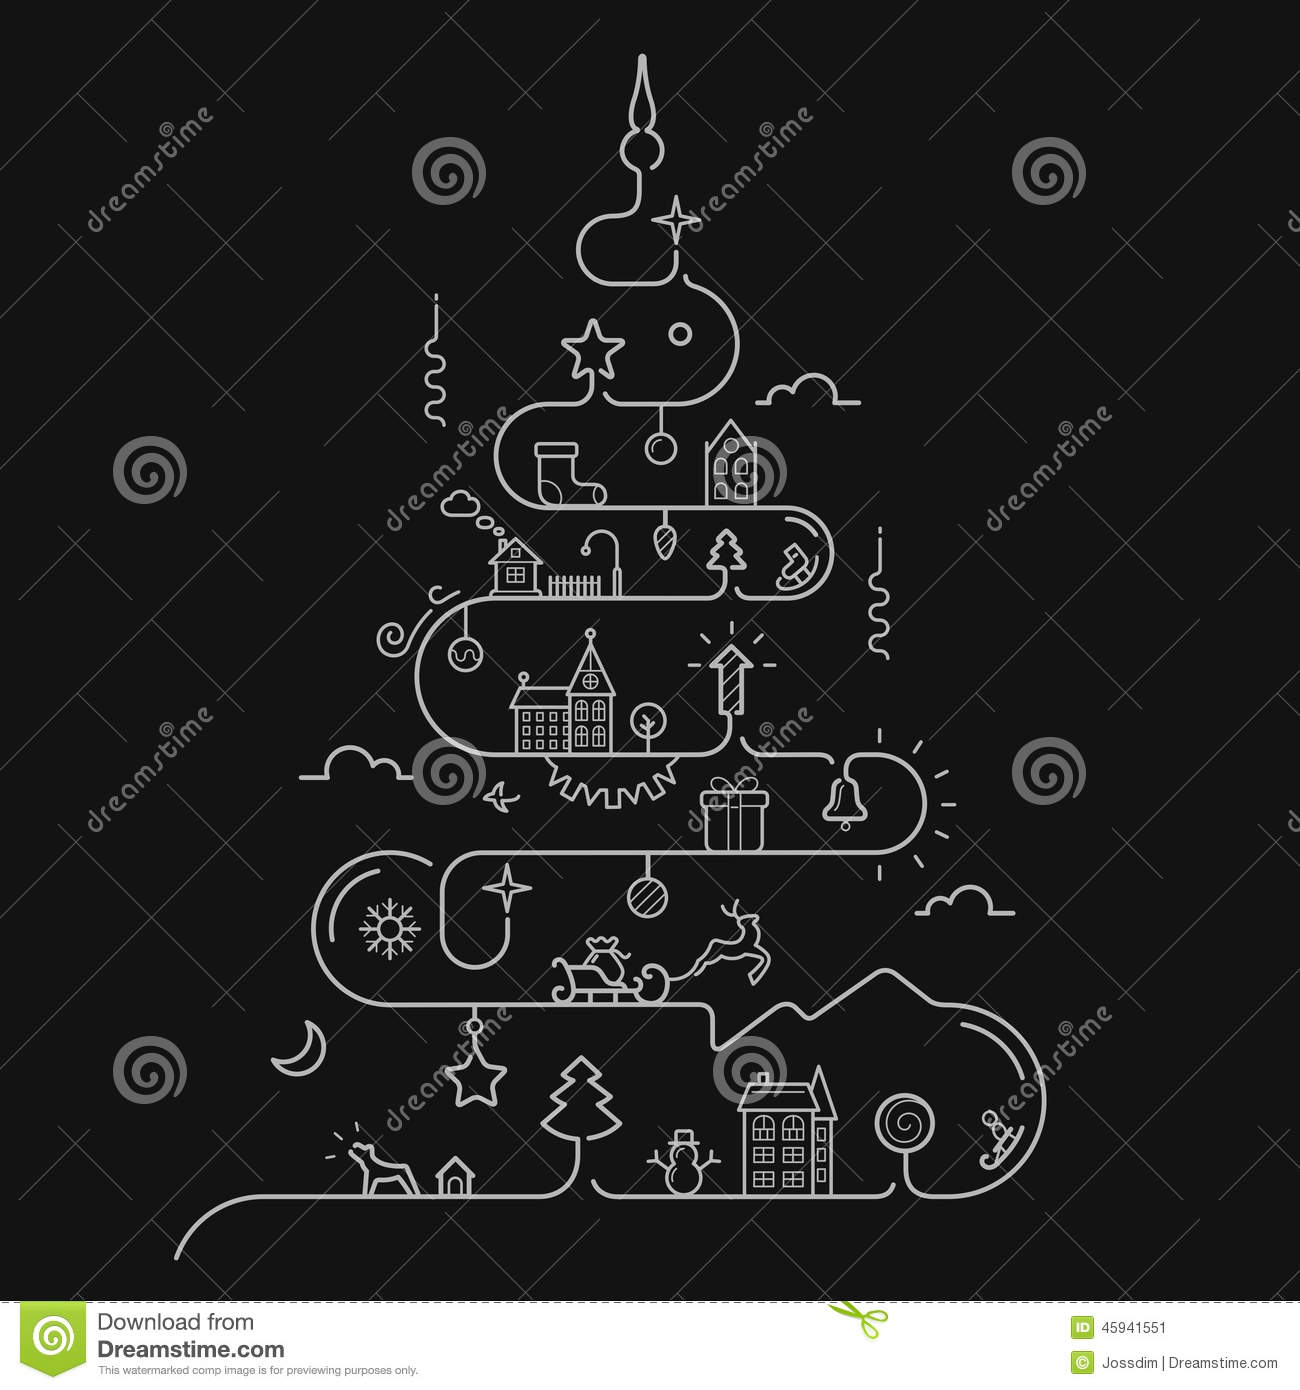 Abstract Christmas Tree In Line Style Stock Vector - Image: 45941551